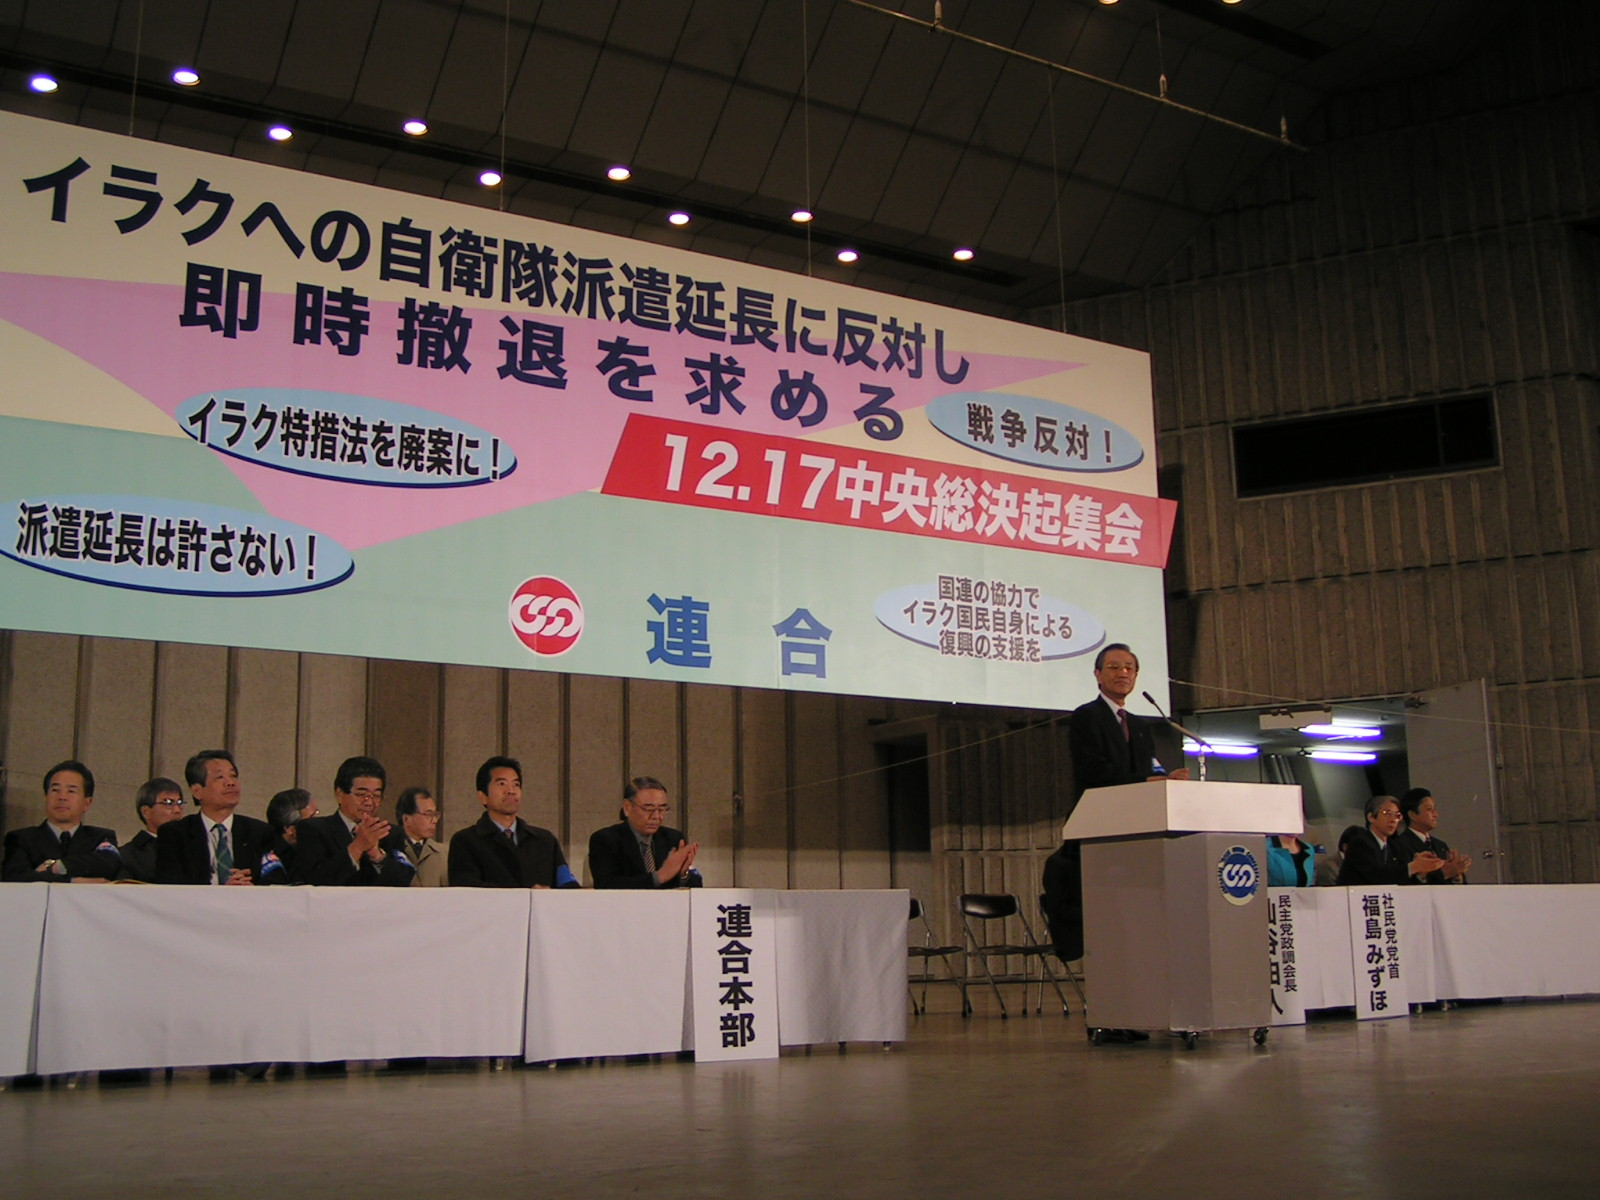 Photo: President Sasamori speaking to the rally. (December 17, Hibiya Amphitheatre)